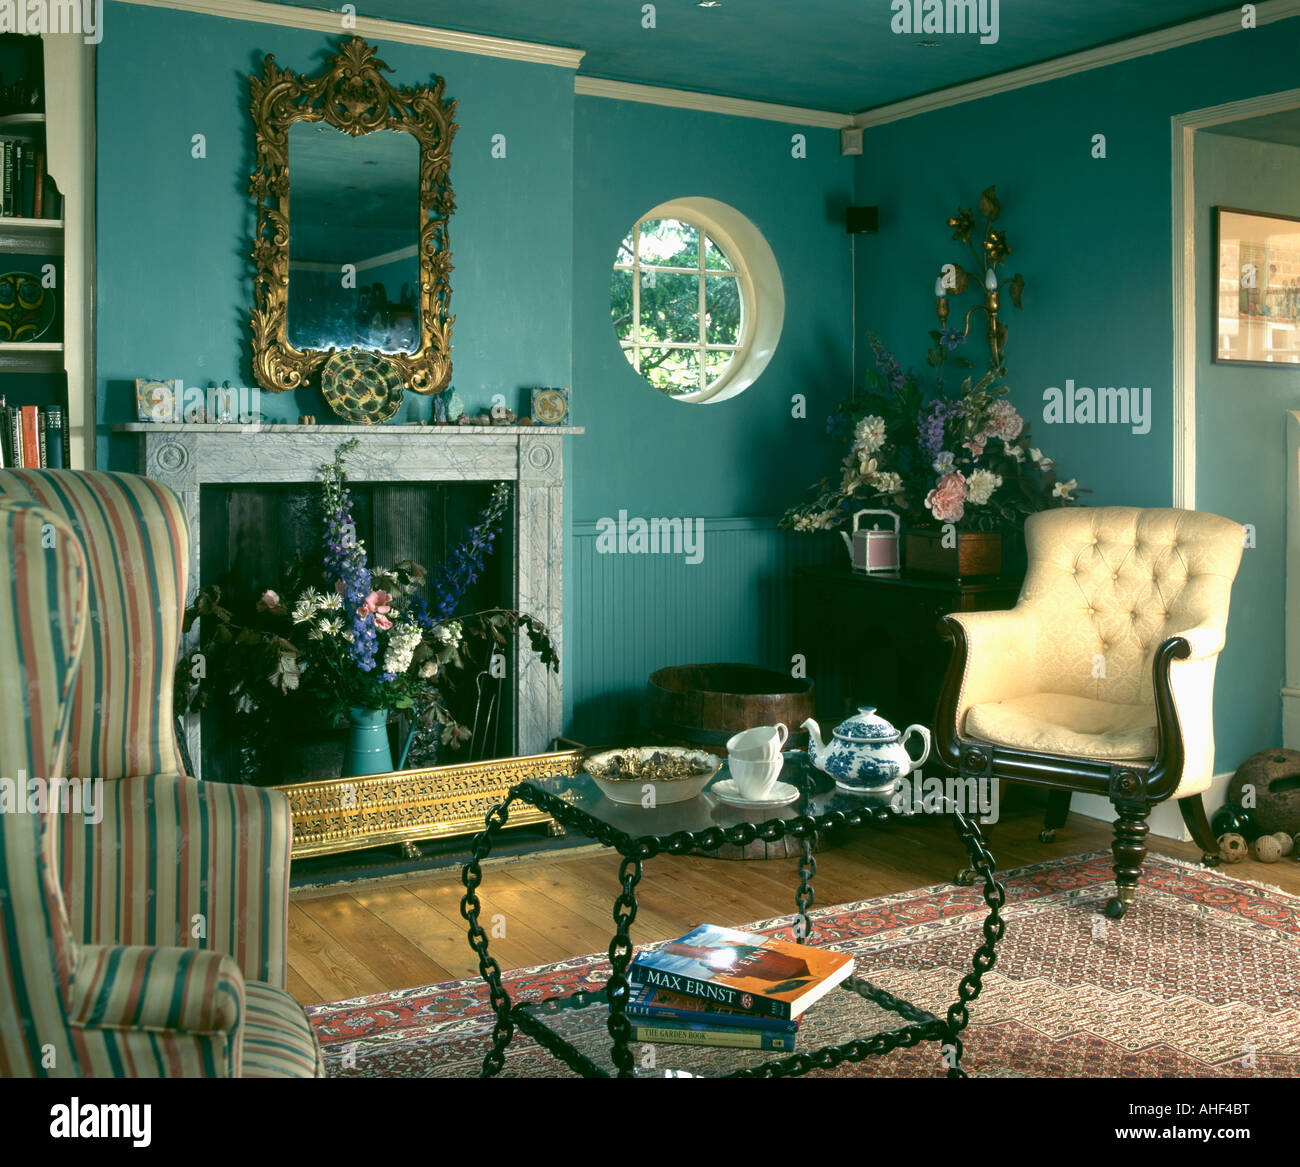 Green Nineties Livingroom With Cream Victorian Armchair And Glass Stock Photo Alamy